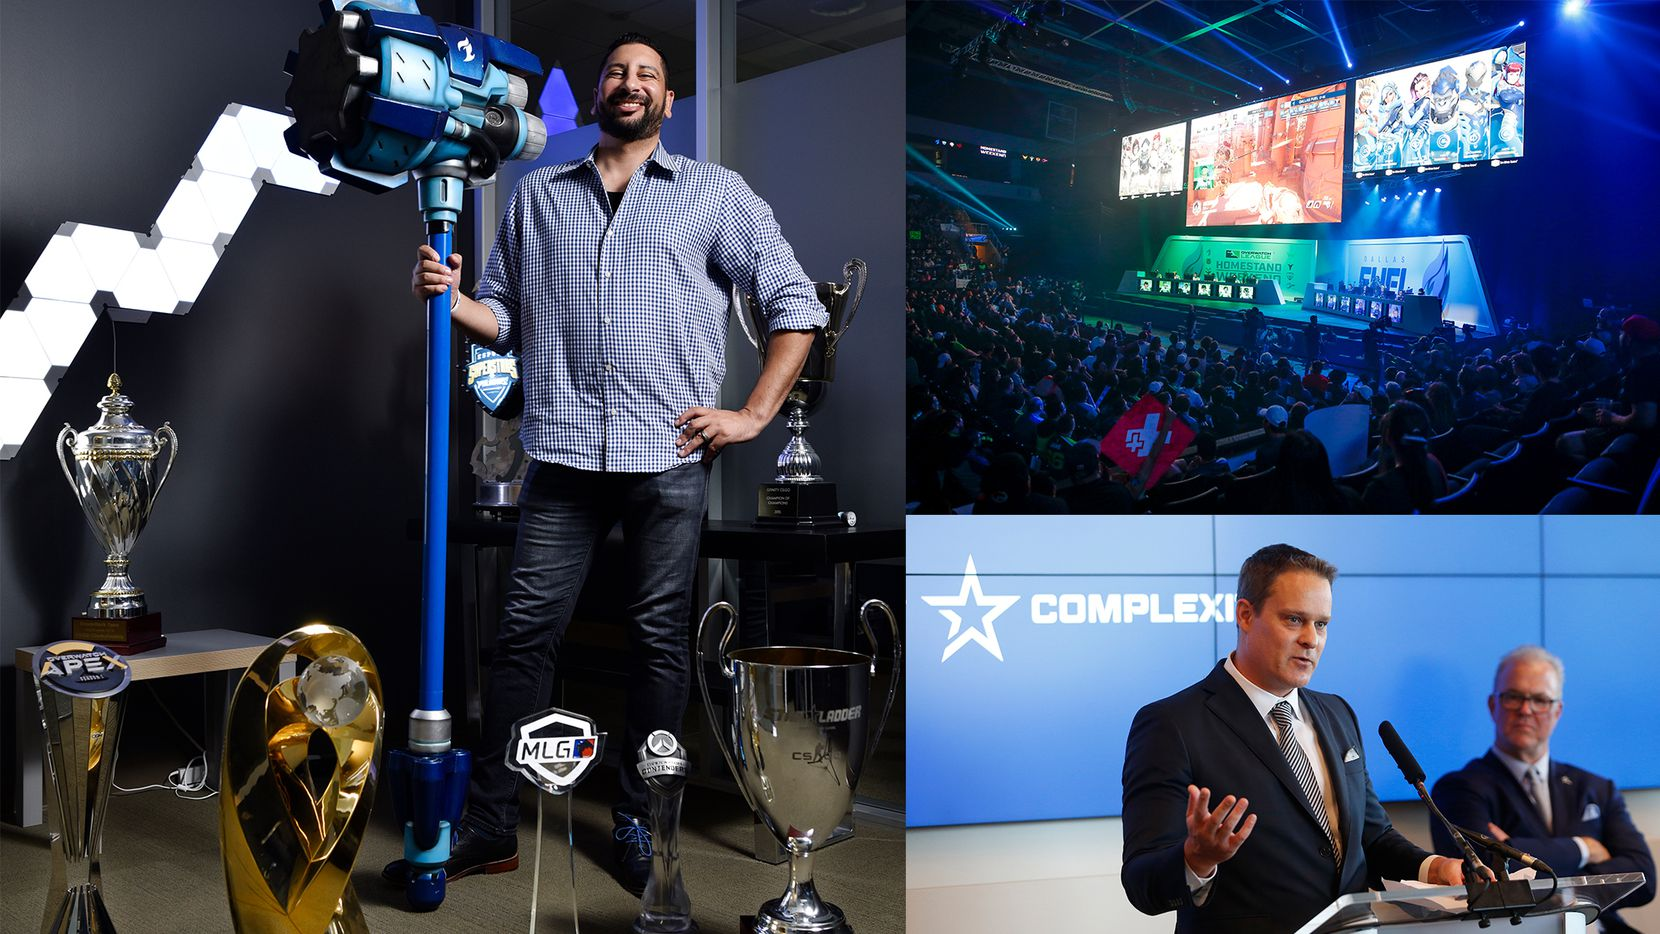 Mike Rufail, left, and Jason Lake, bottom right, brought Envy Gaming and Complexity Gaming to the burgeoning North Texas esports scene. In the top right, The Dallas Fuel and Houston Outlaws square off in the first Overwatch League homestand weekend at Allen Events Center.